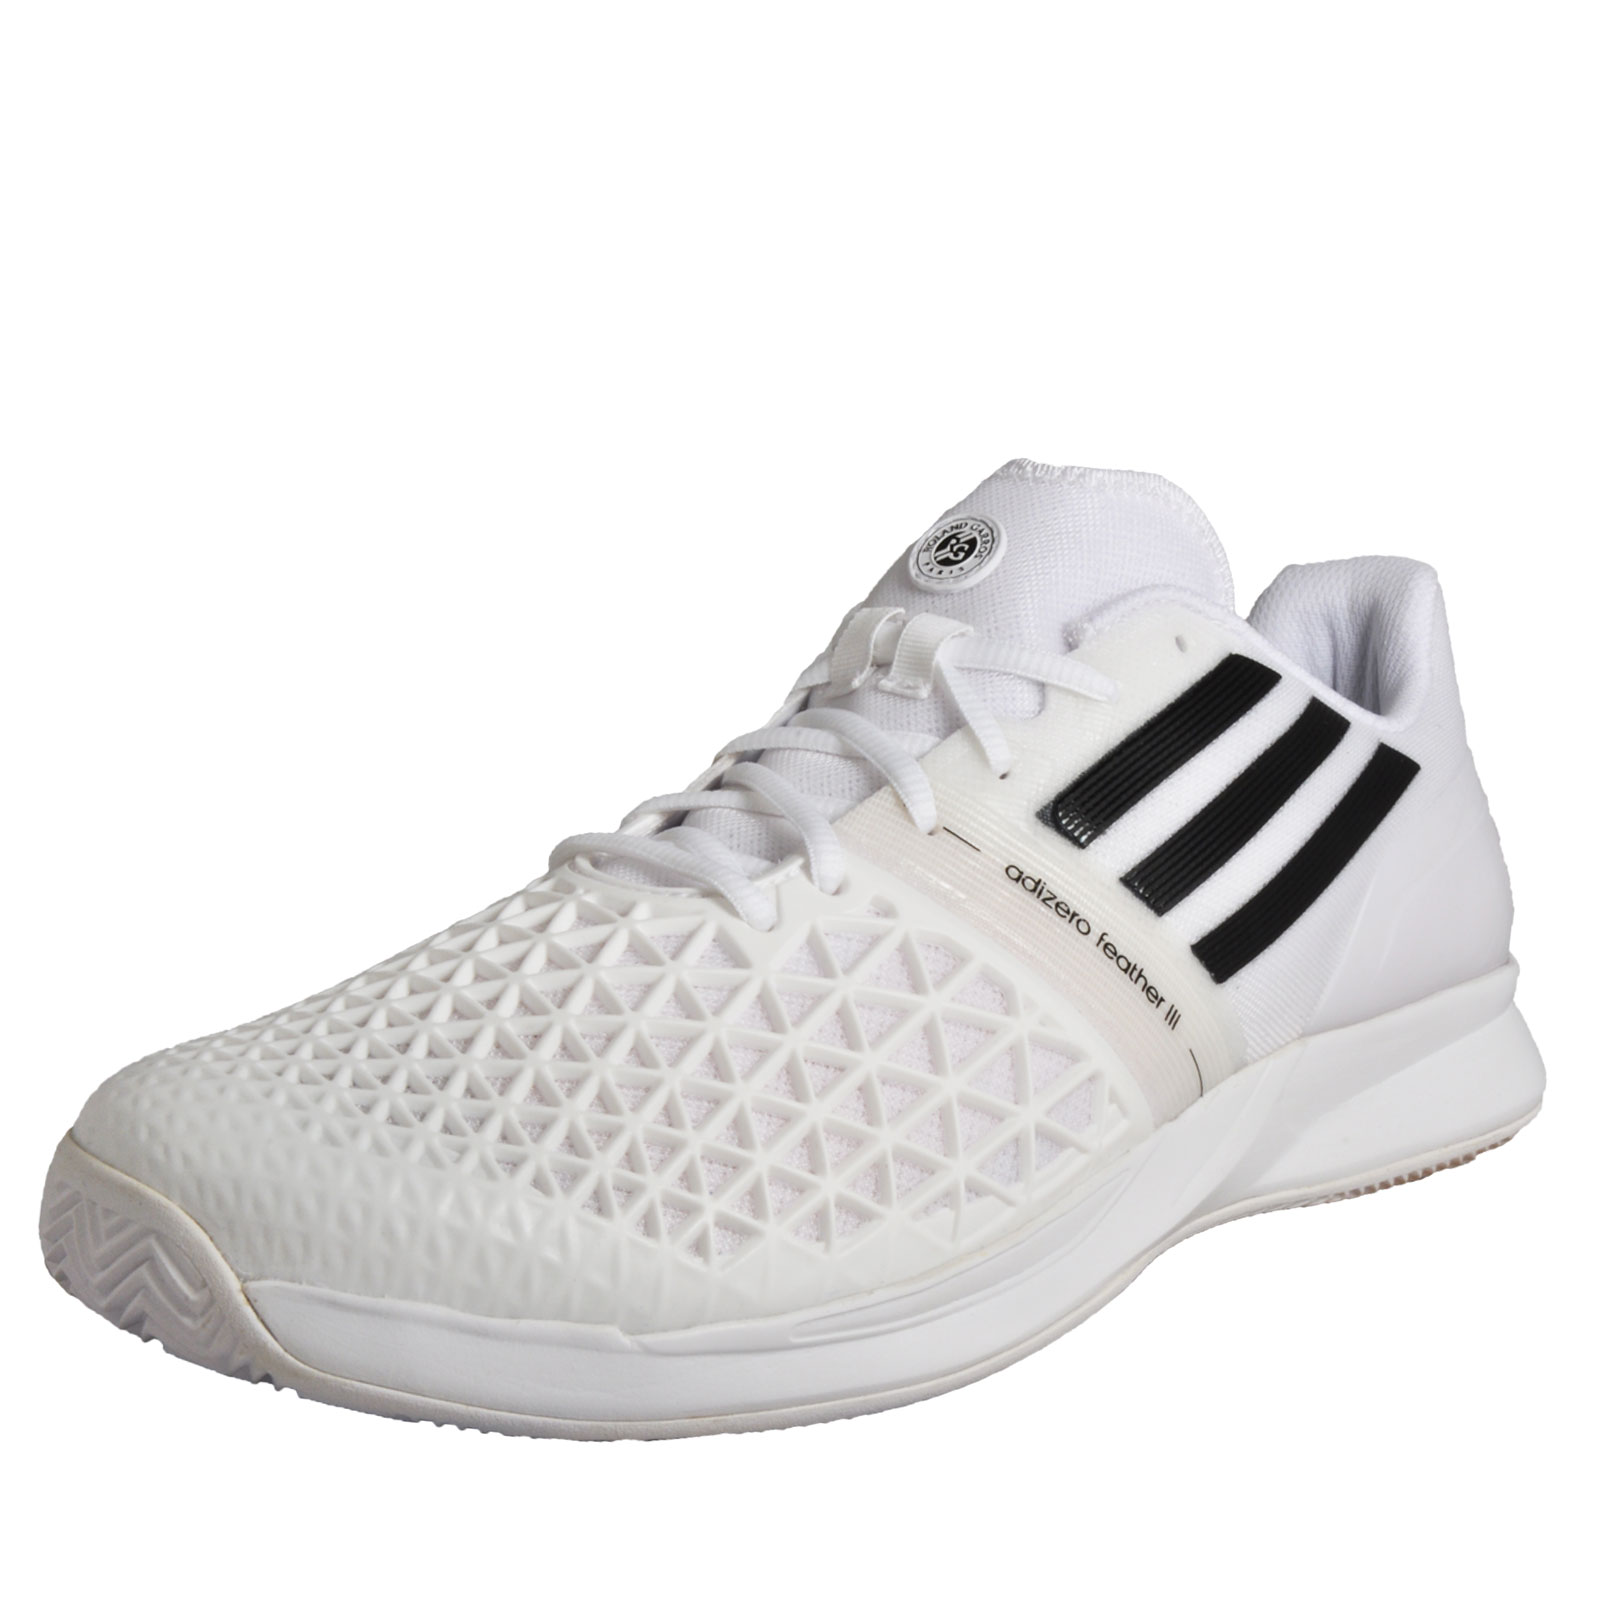 52ed77a11 Details about Adidas CC Adizero Feather III RG Men s Tennis Shoes Court  Fitness Trainers White